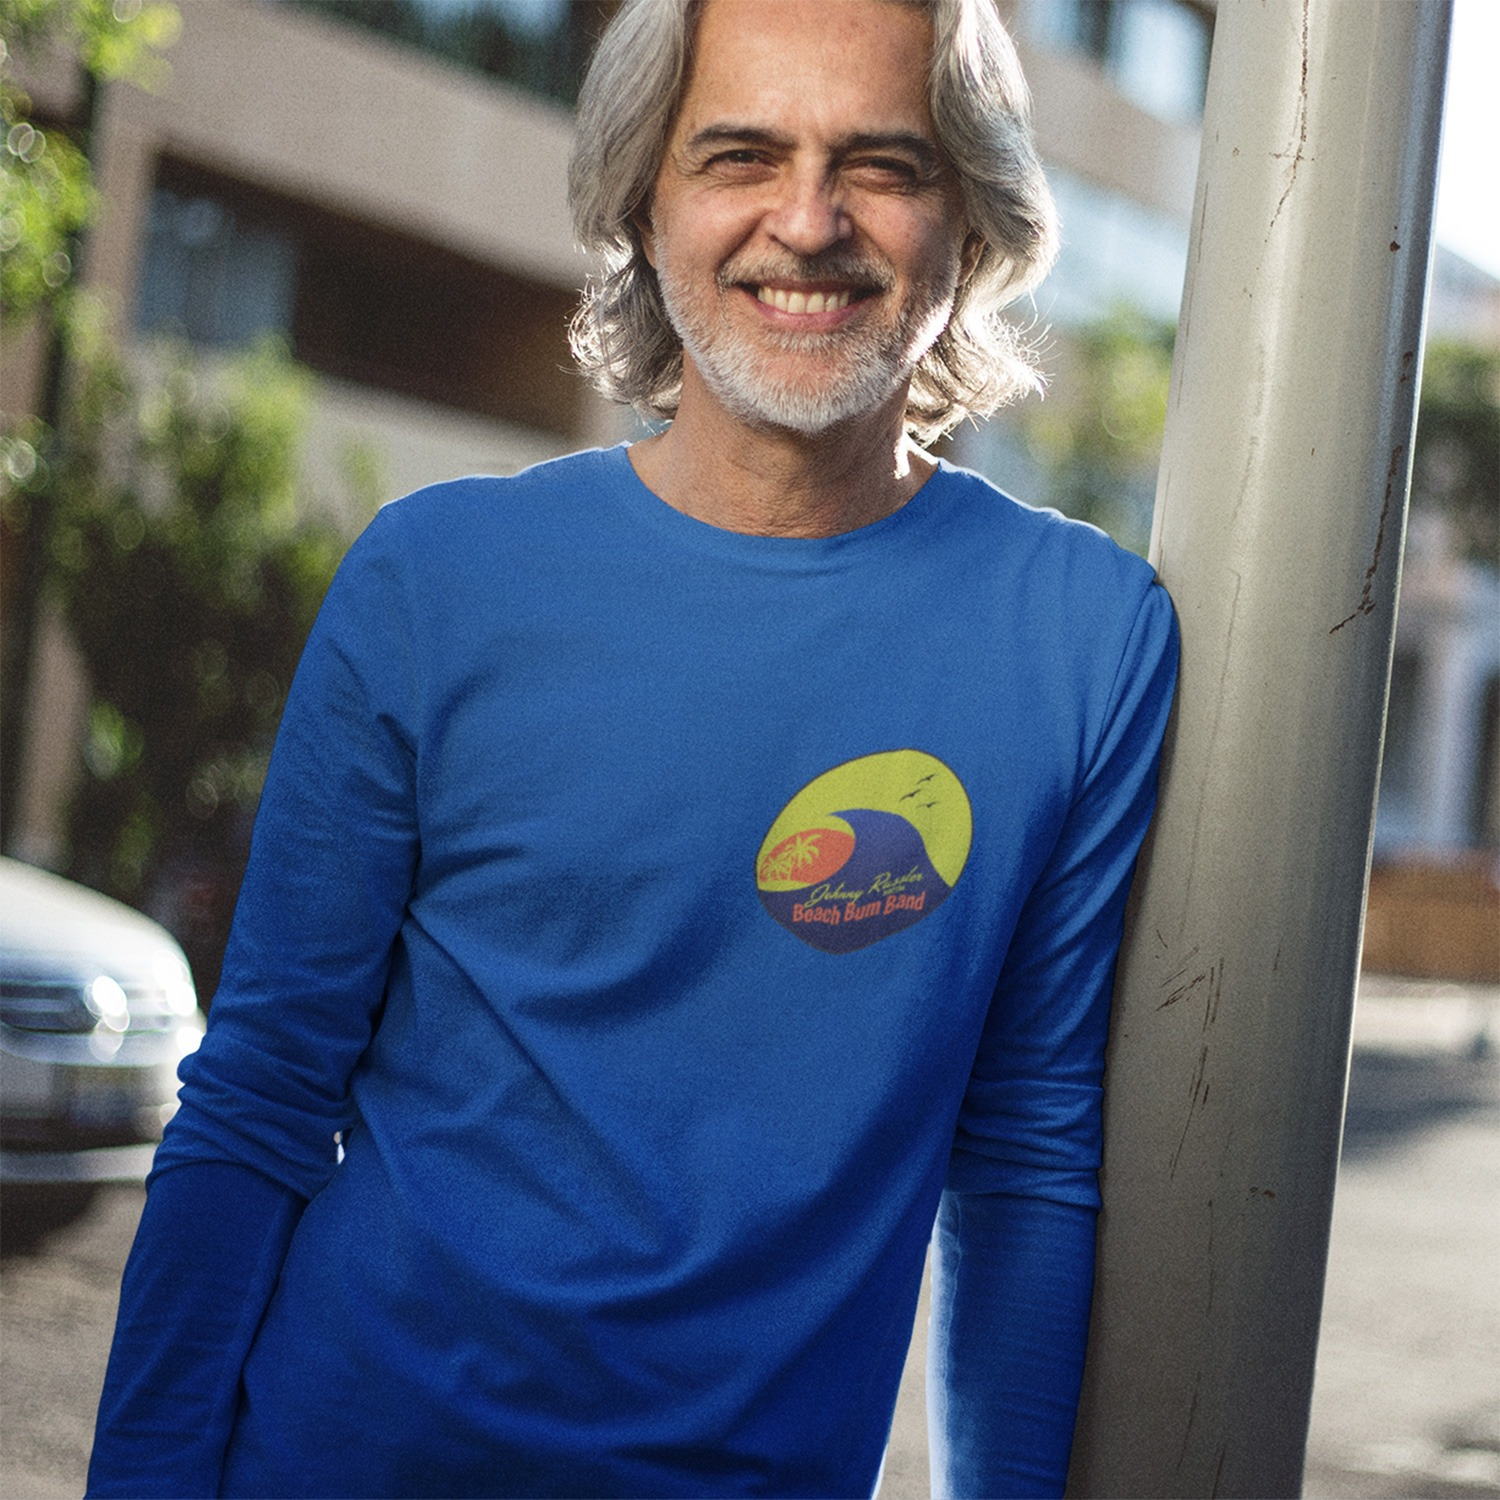 Johnny Russler and the Beach Bum Band Unisex Long Sleeve Tee, The Troprock Shop